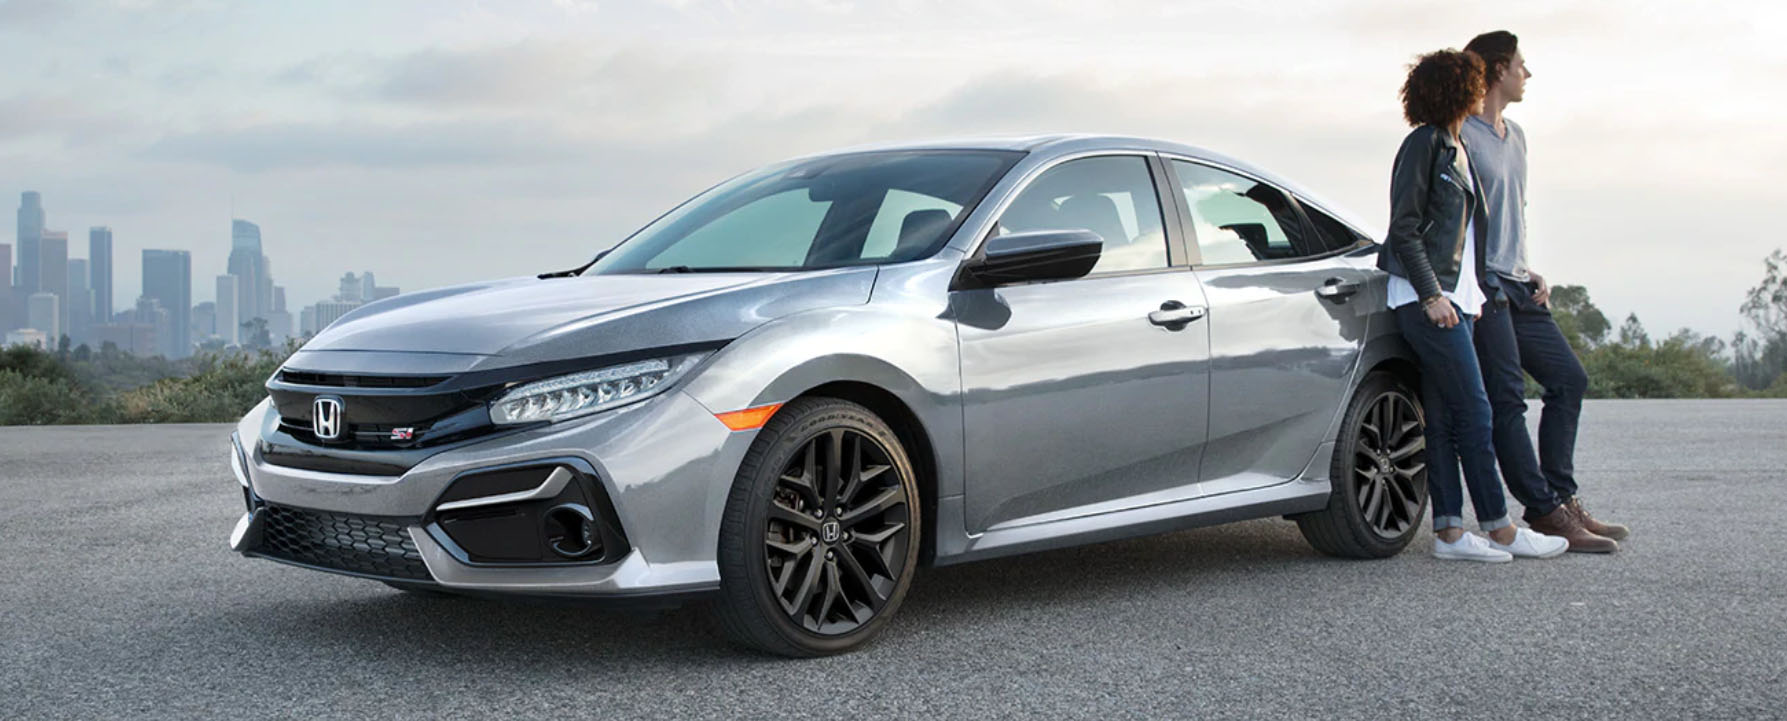 2020 Honda Civic Si Sedan For Sale in Boise